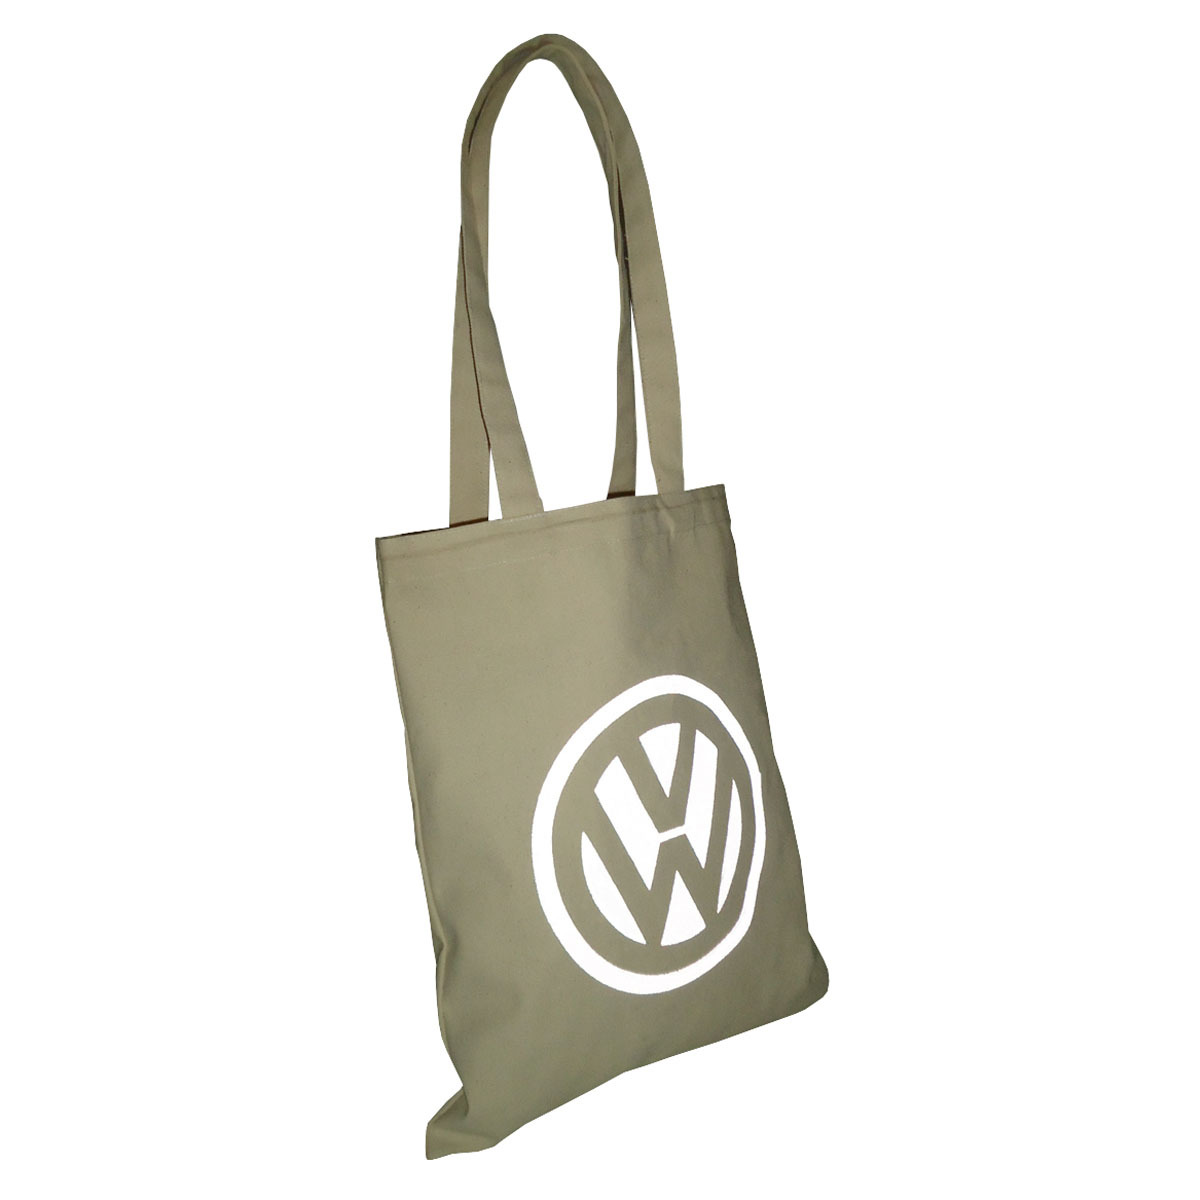 10 Oz Natural Canvas Tote Bag With Reflective Ink Print Logo